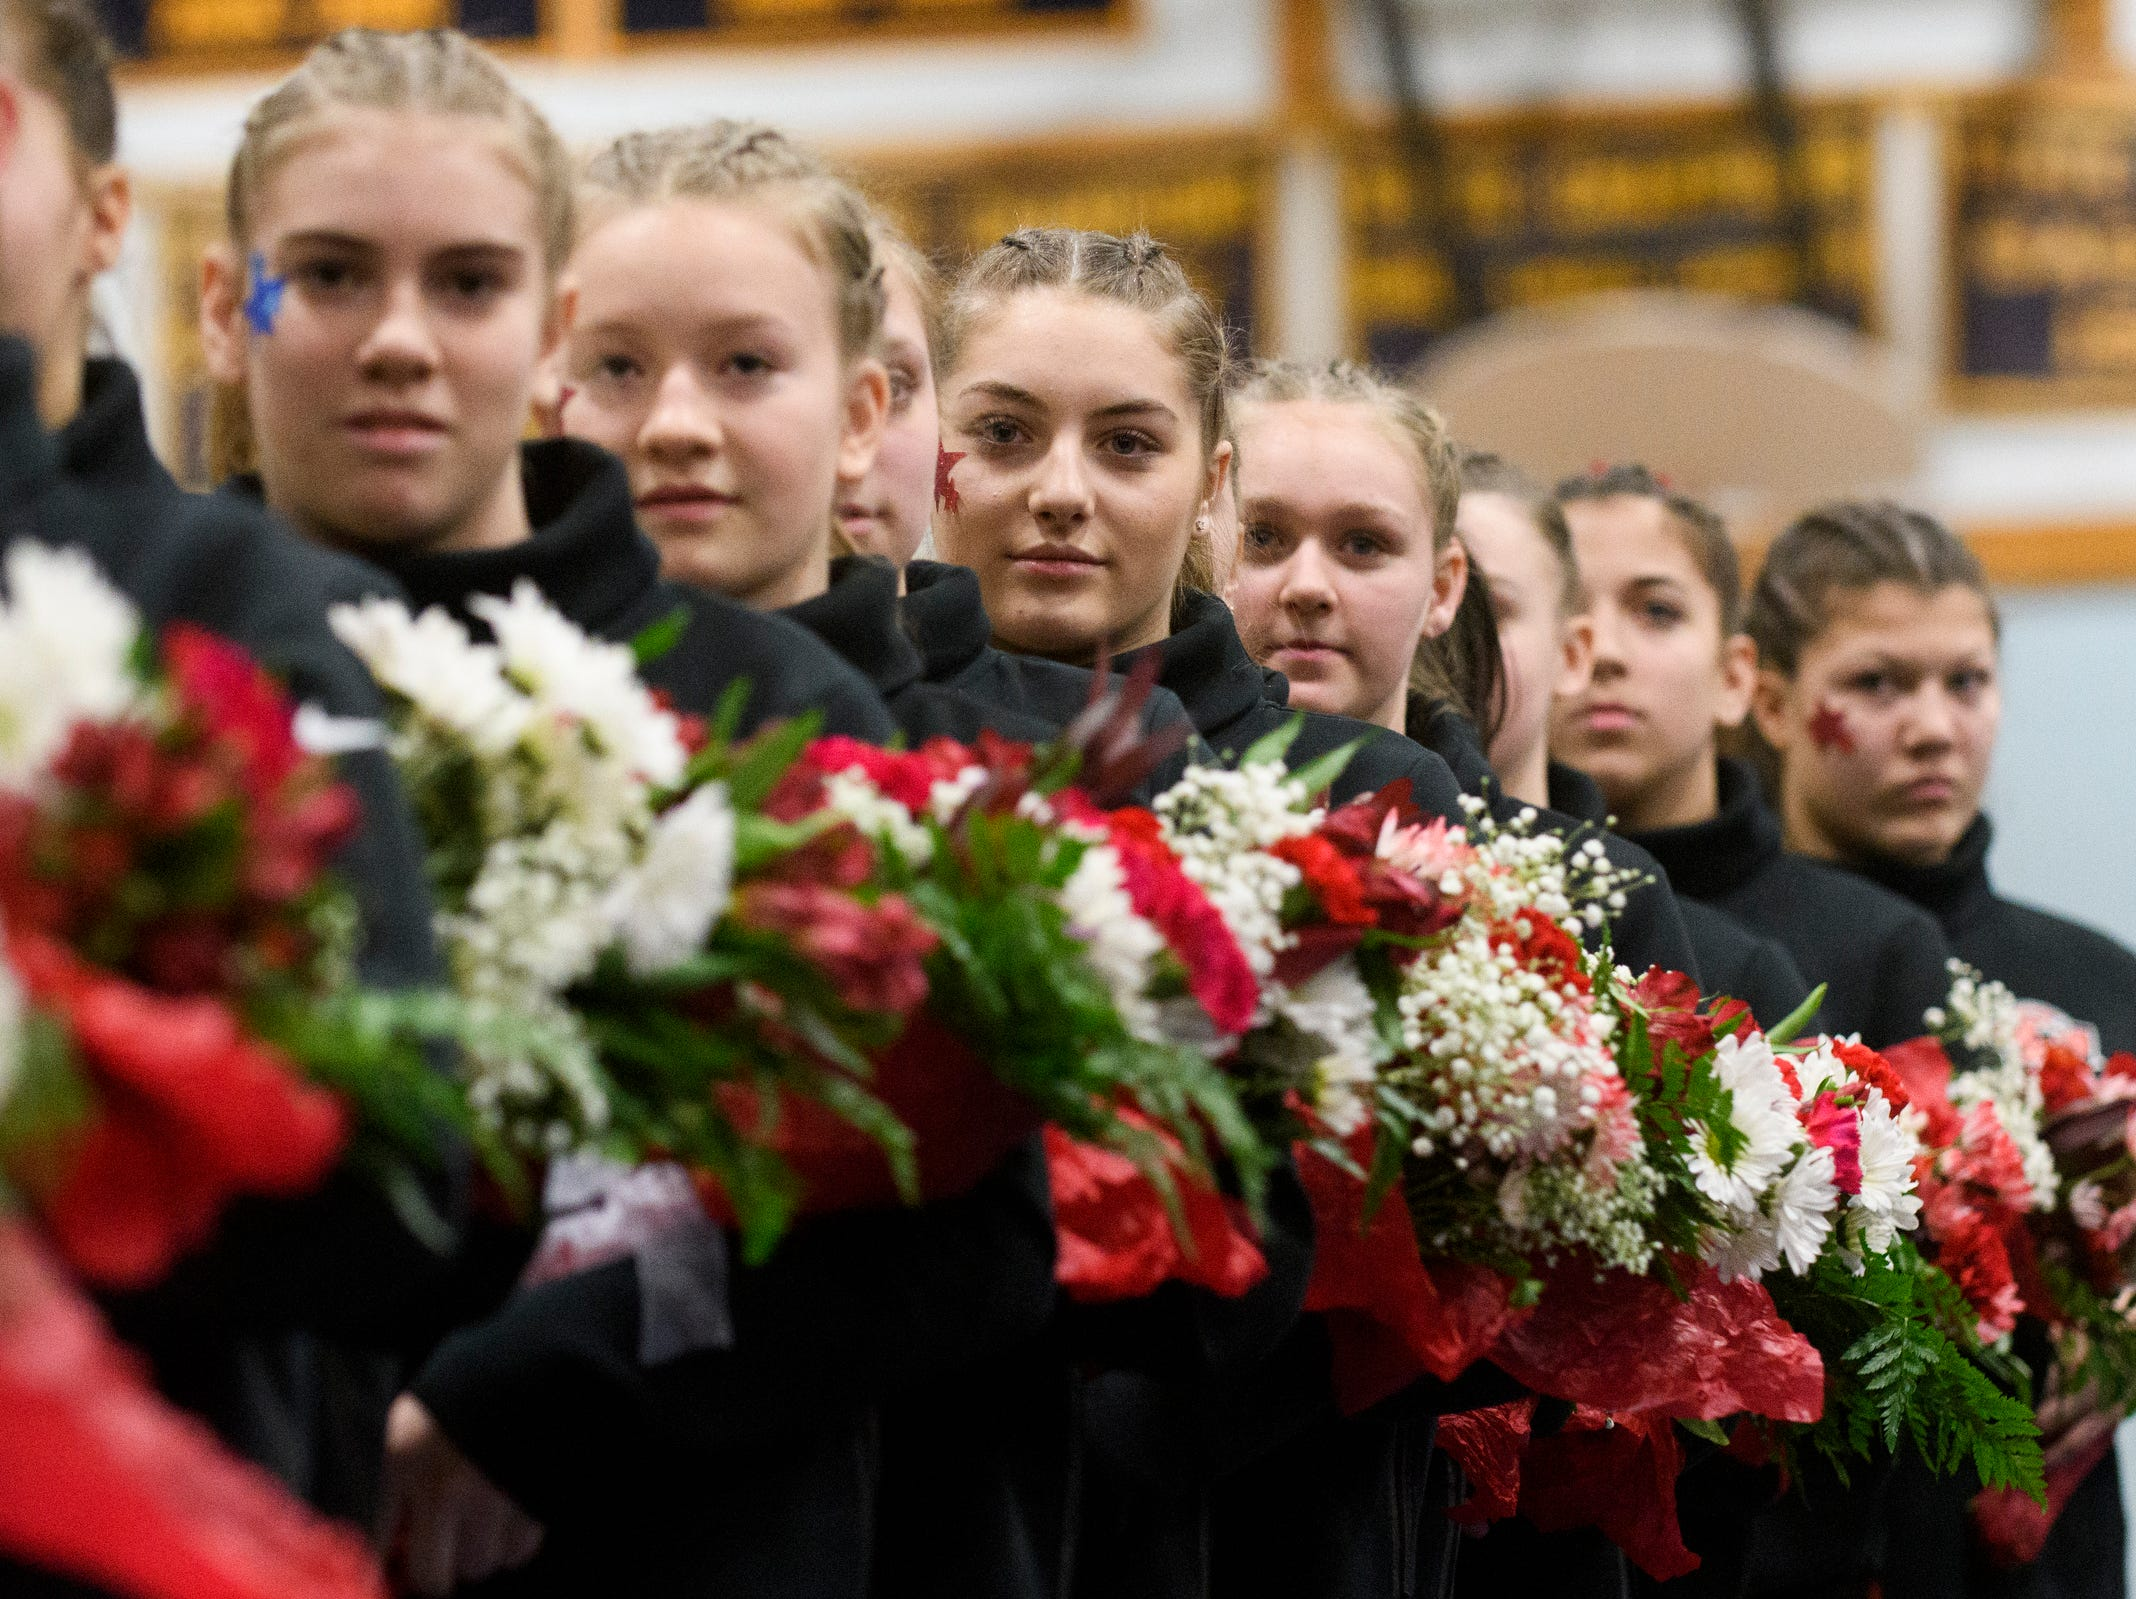 The CVU team during introductions in the 2019 high school gymnastics championship at Essex High School on Saturday afternoon February 16, 2019 in Essex, Vermont.